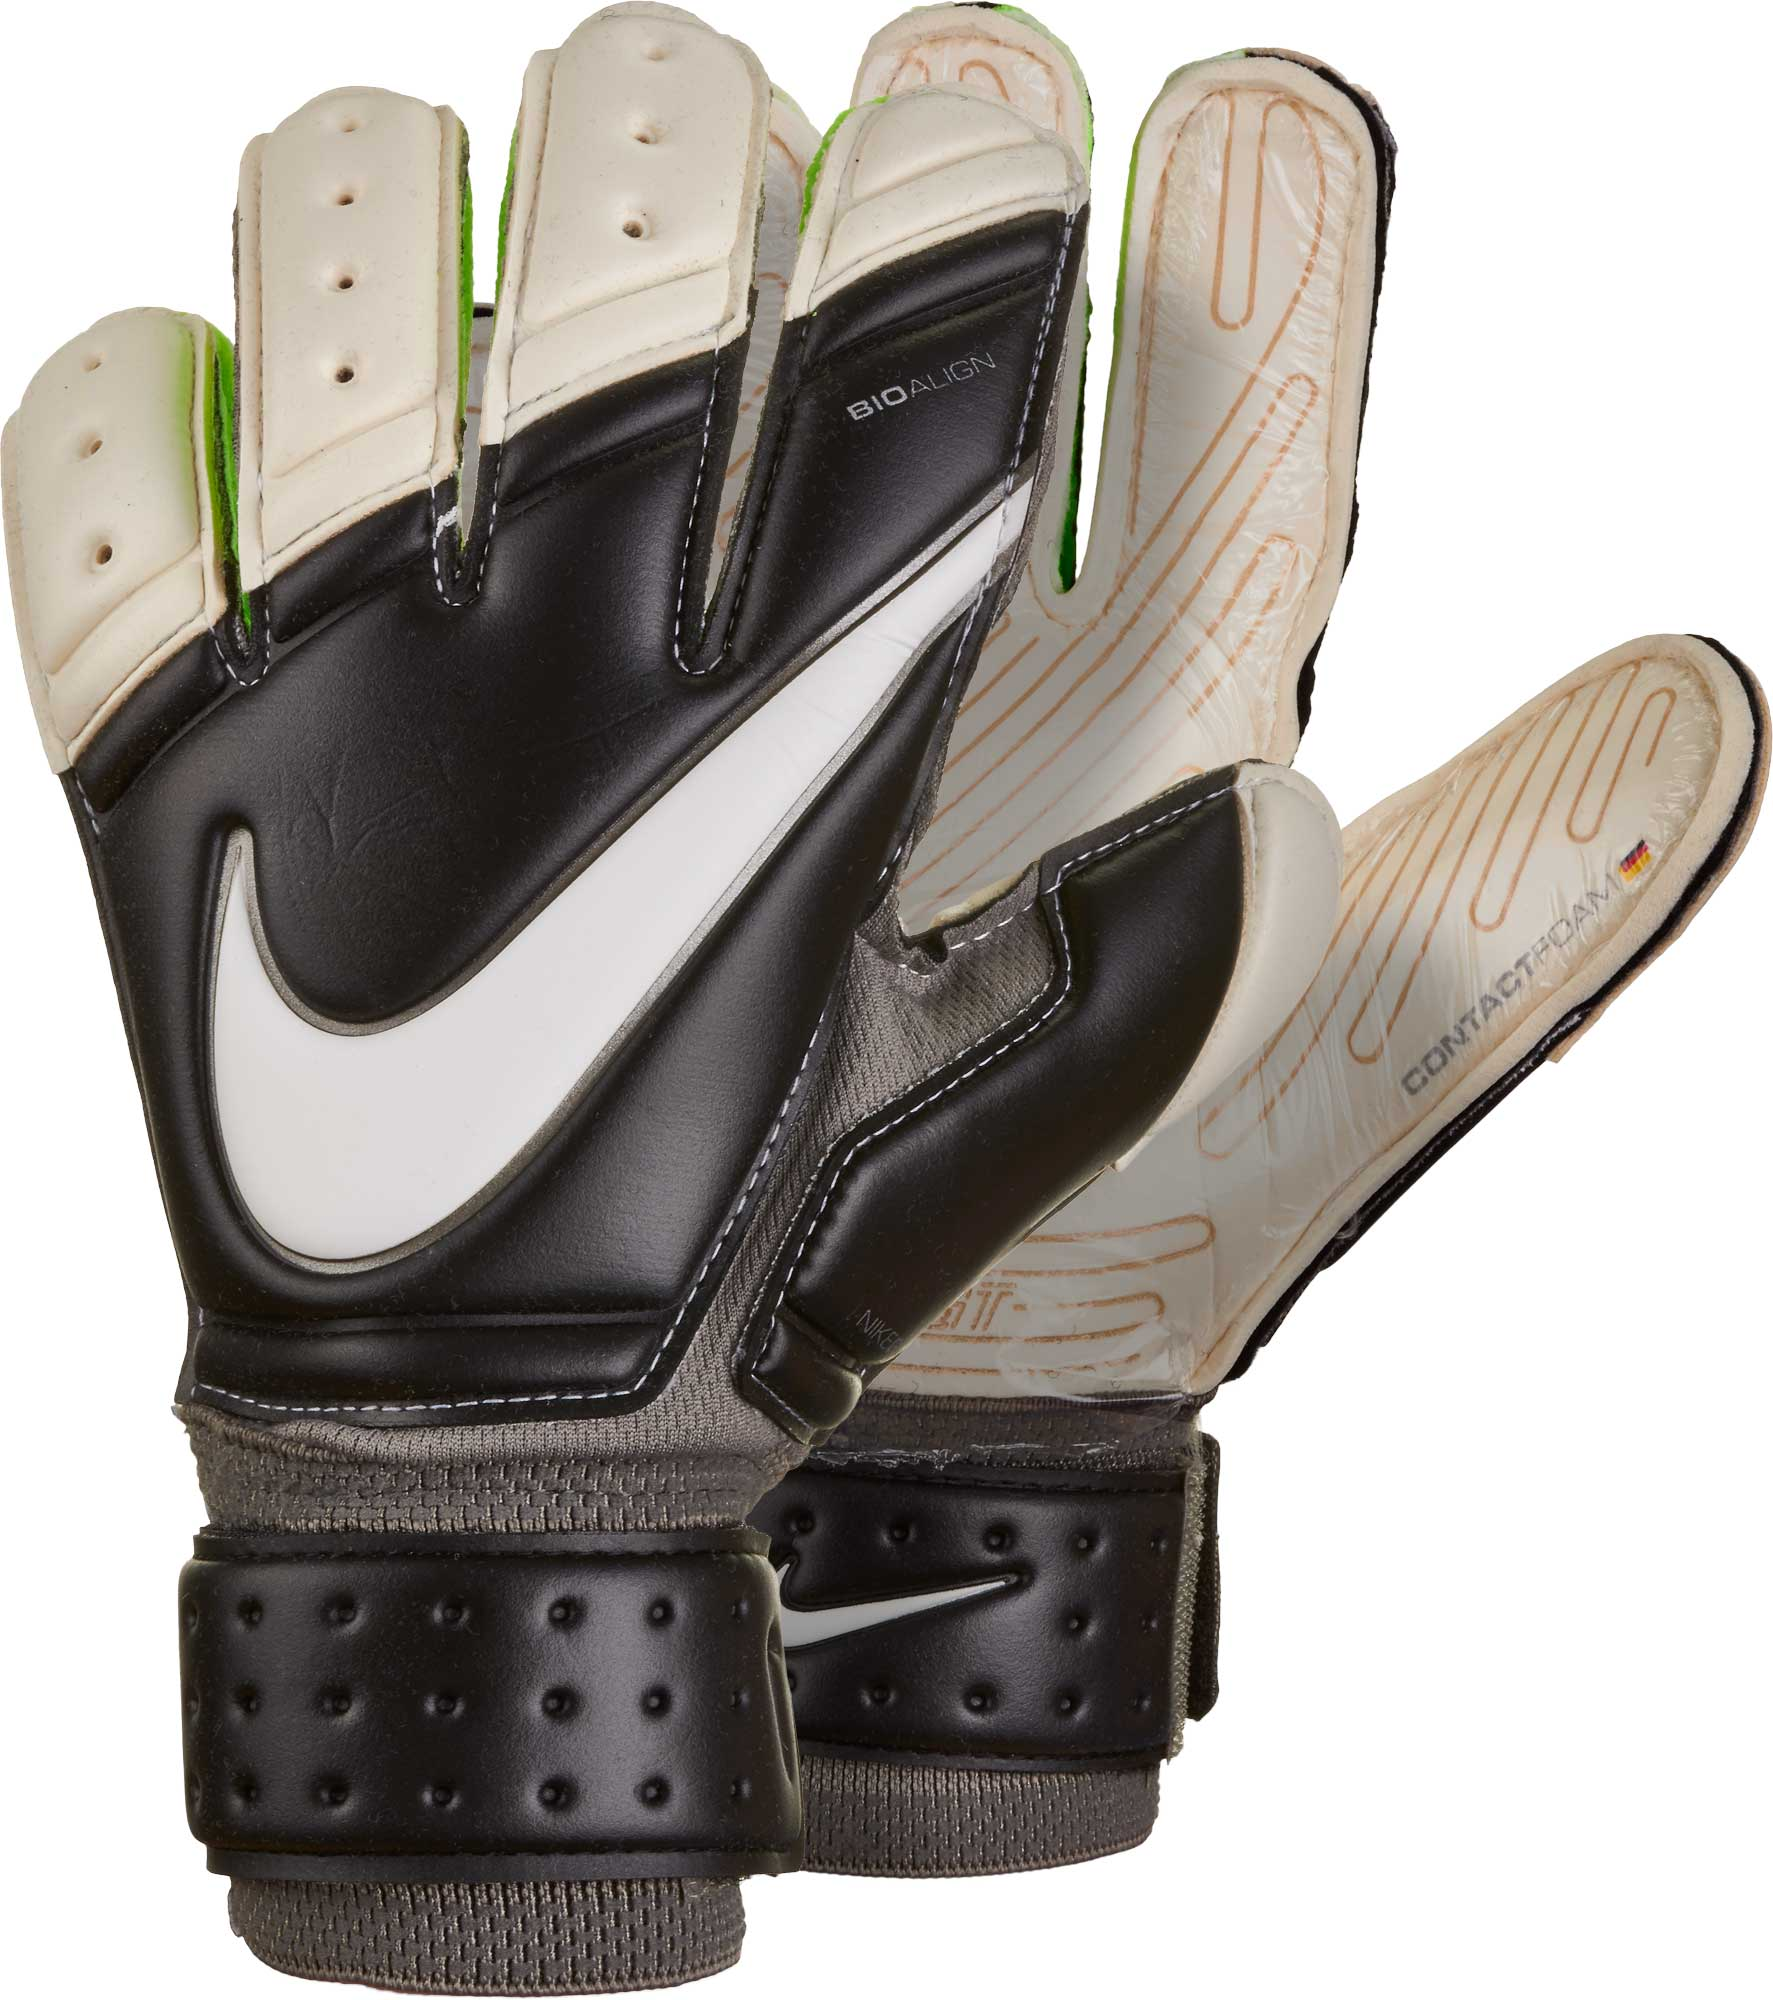 Nike Premier SGT Goalkeeper Gloves - Black GK Gloves 2a8f5e616139